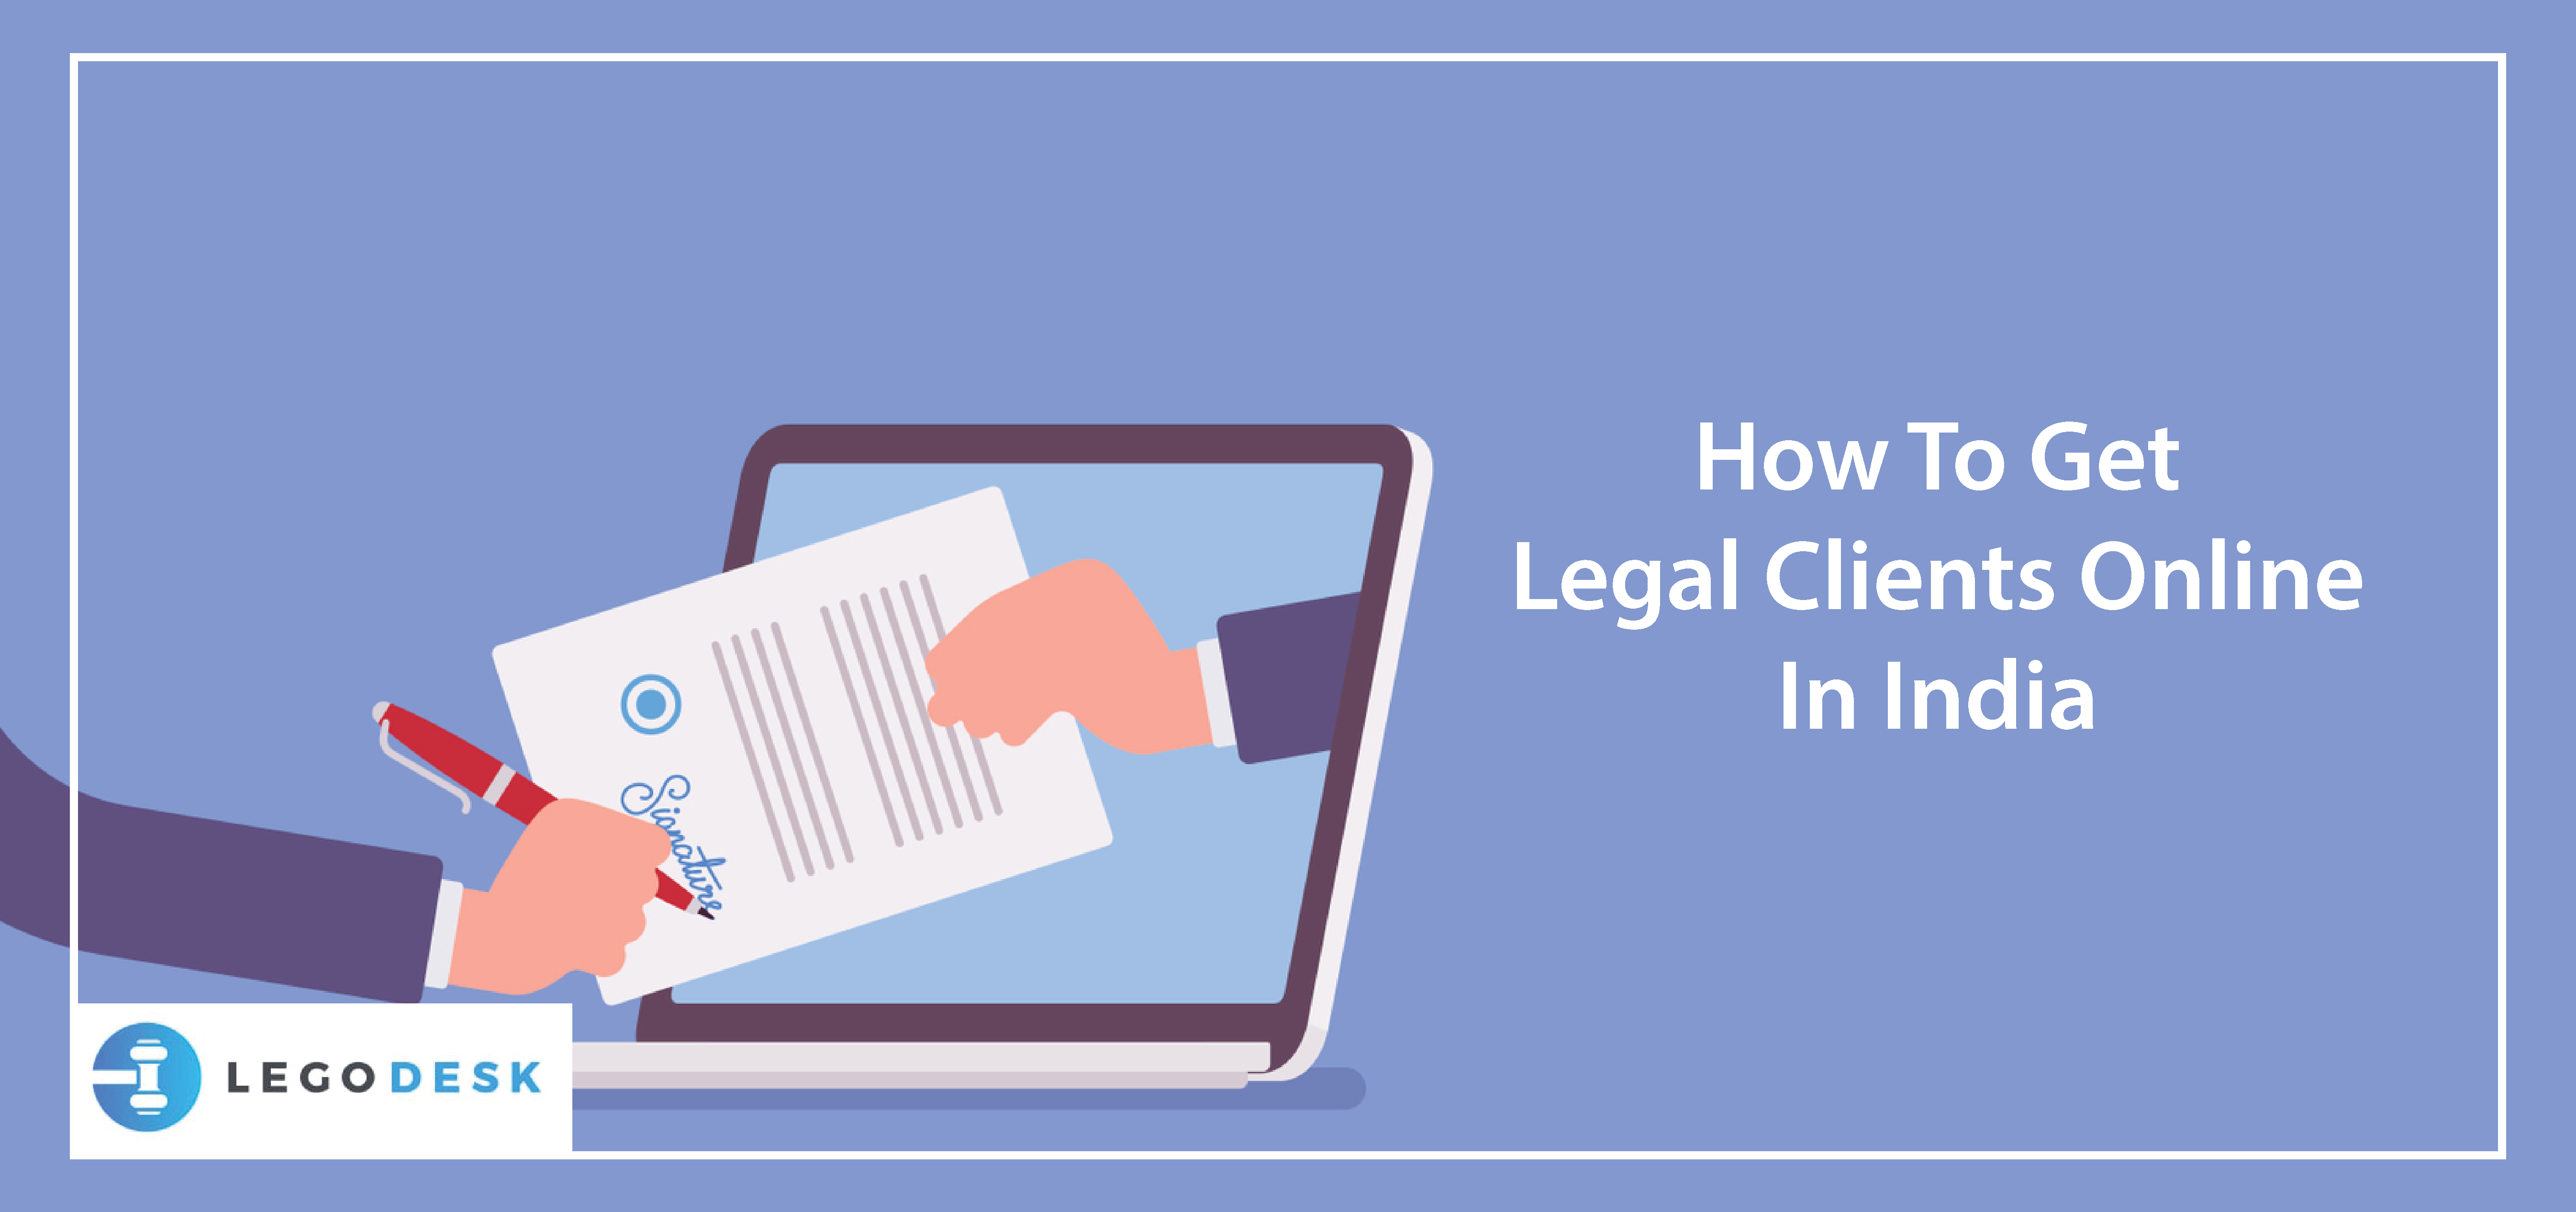 How To Get Legal Clients Online In India